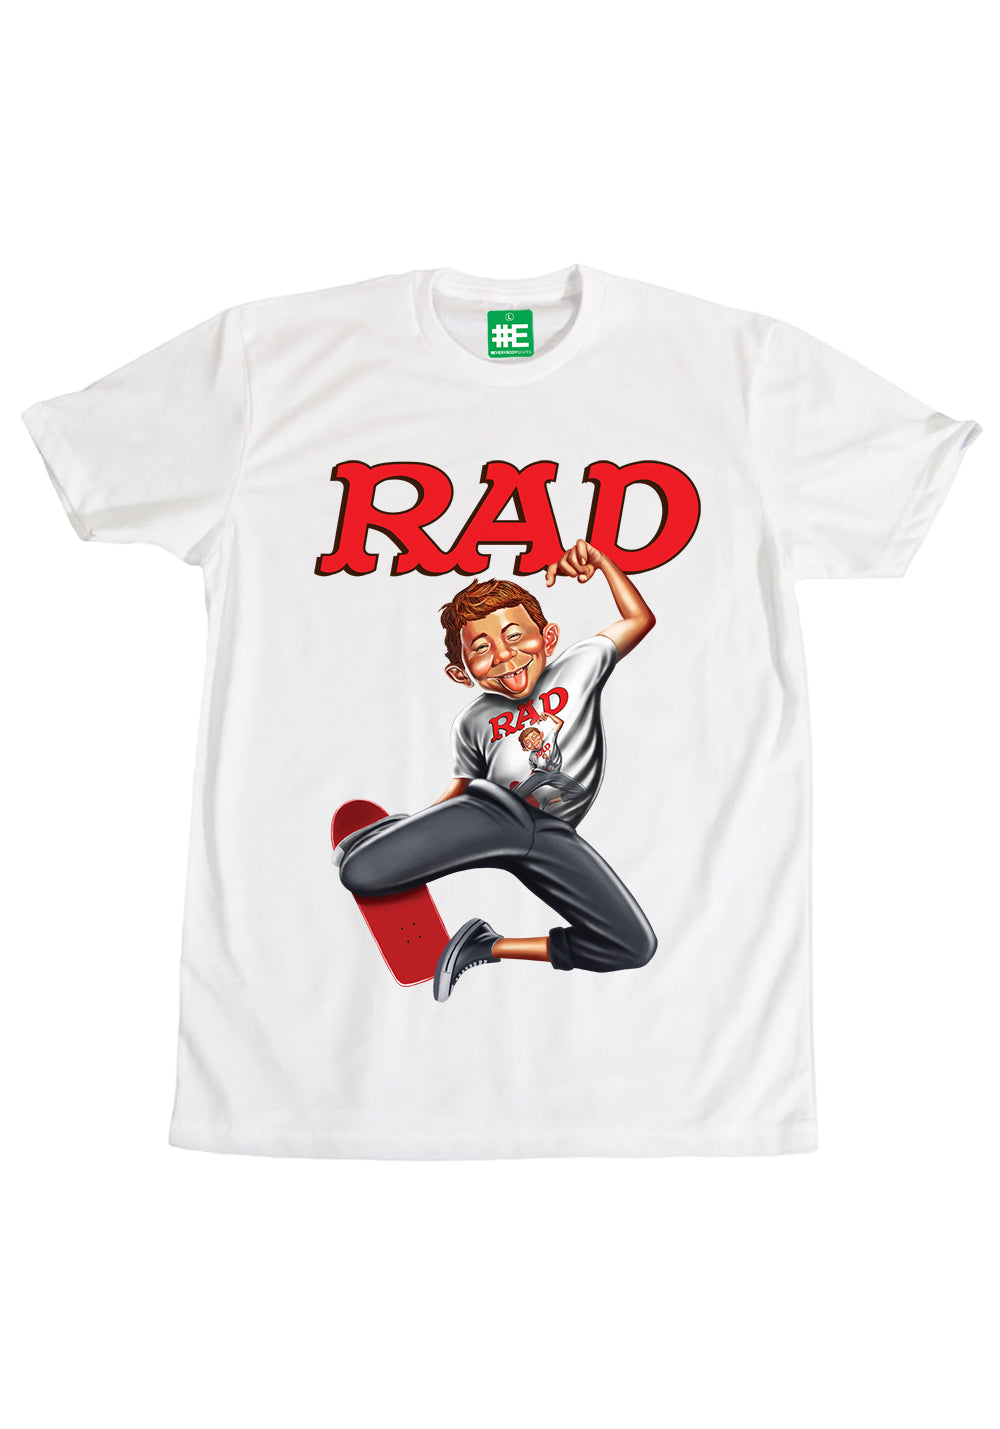 """Rad"" Graphic T-shirt"